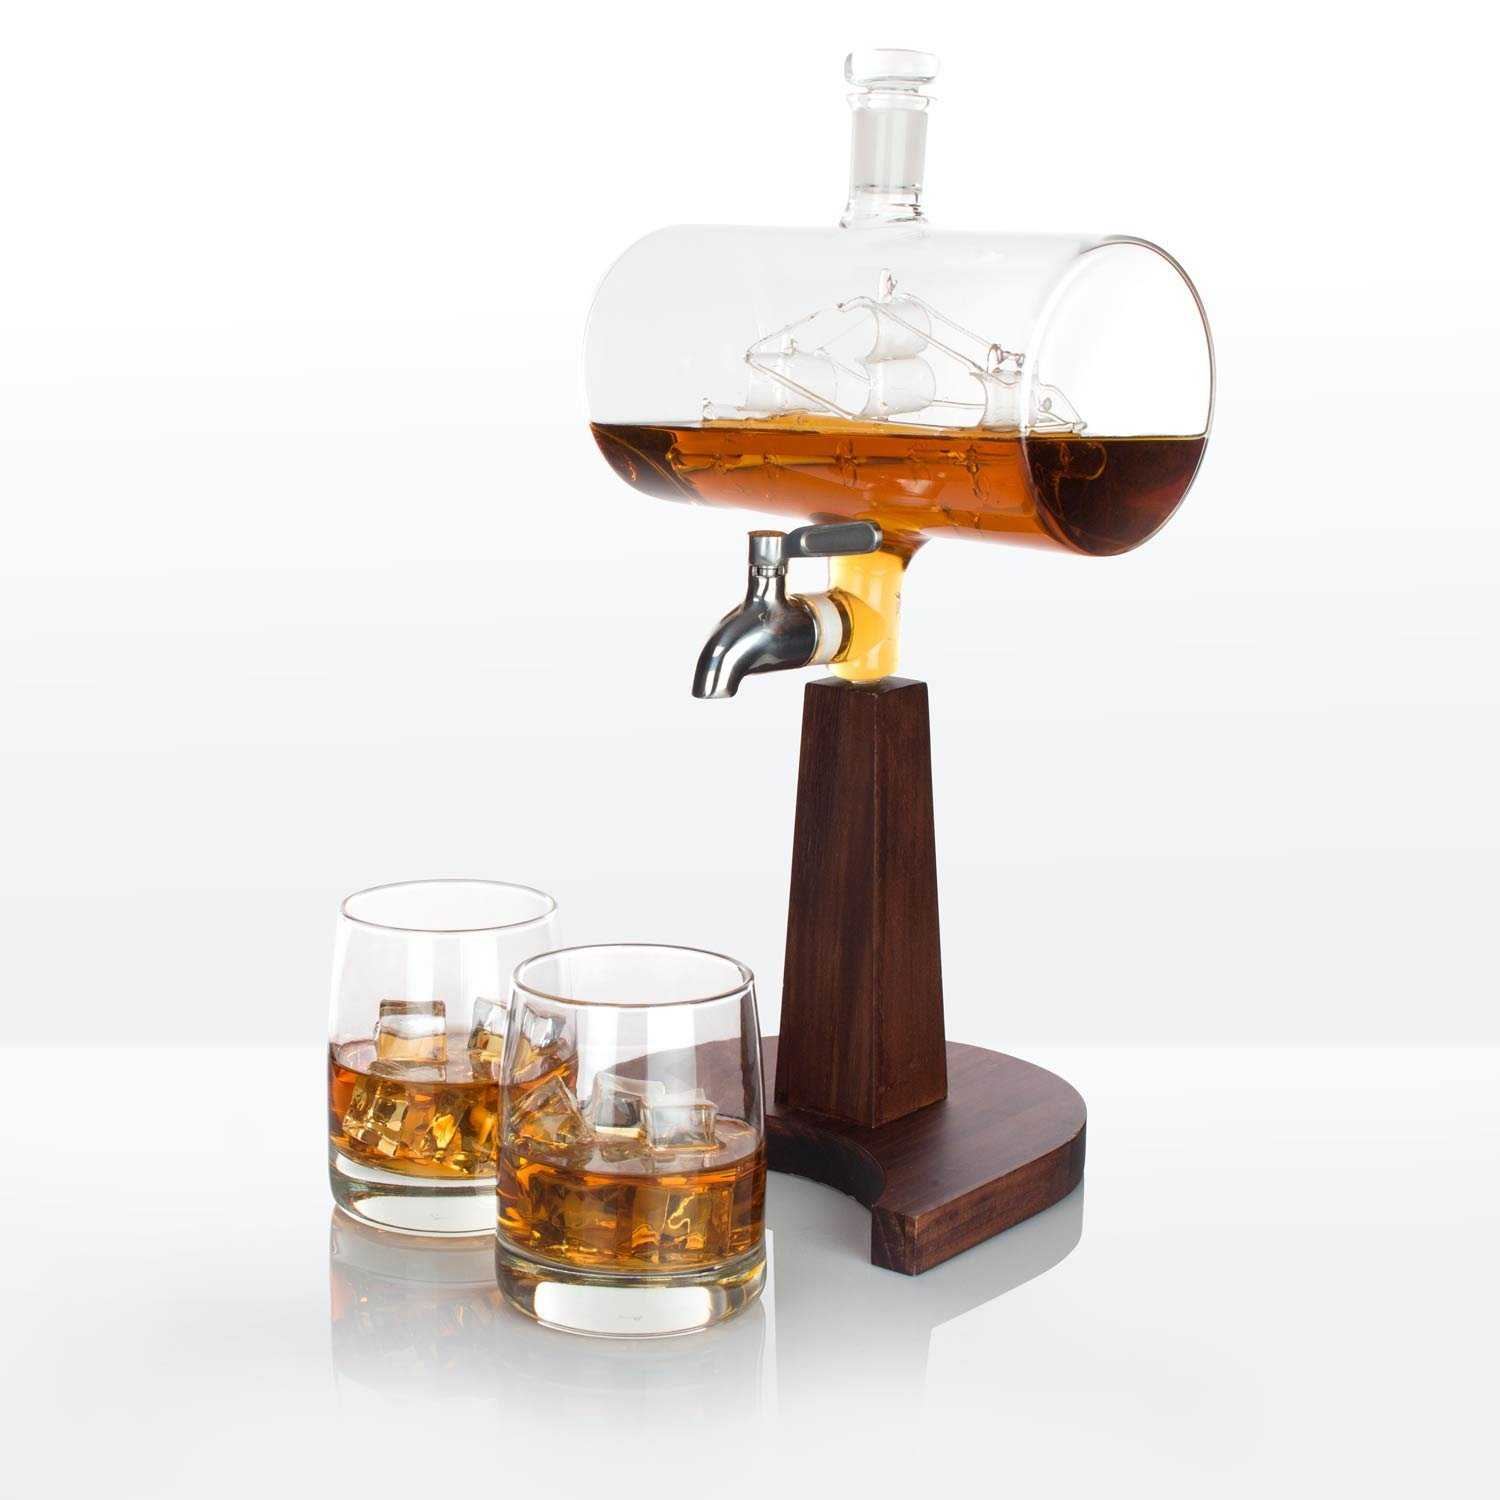 ship whiskey decanter to enjoy whiskey in style